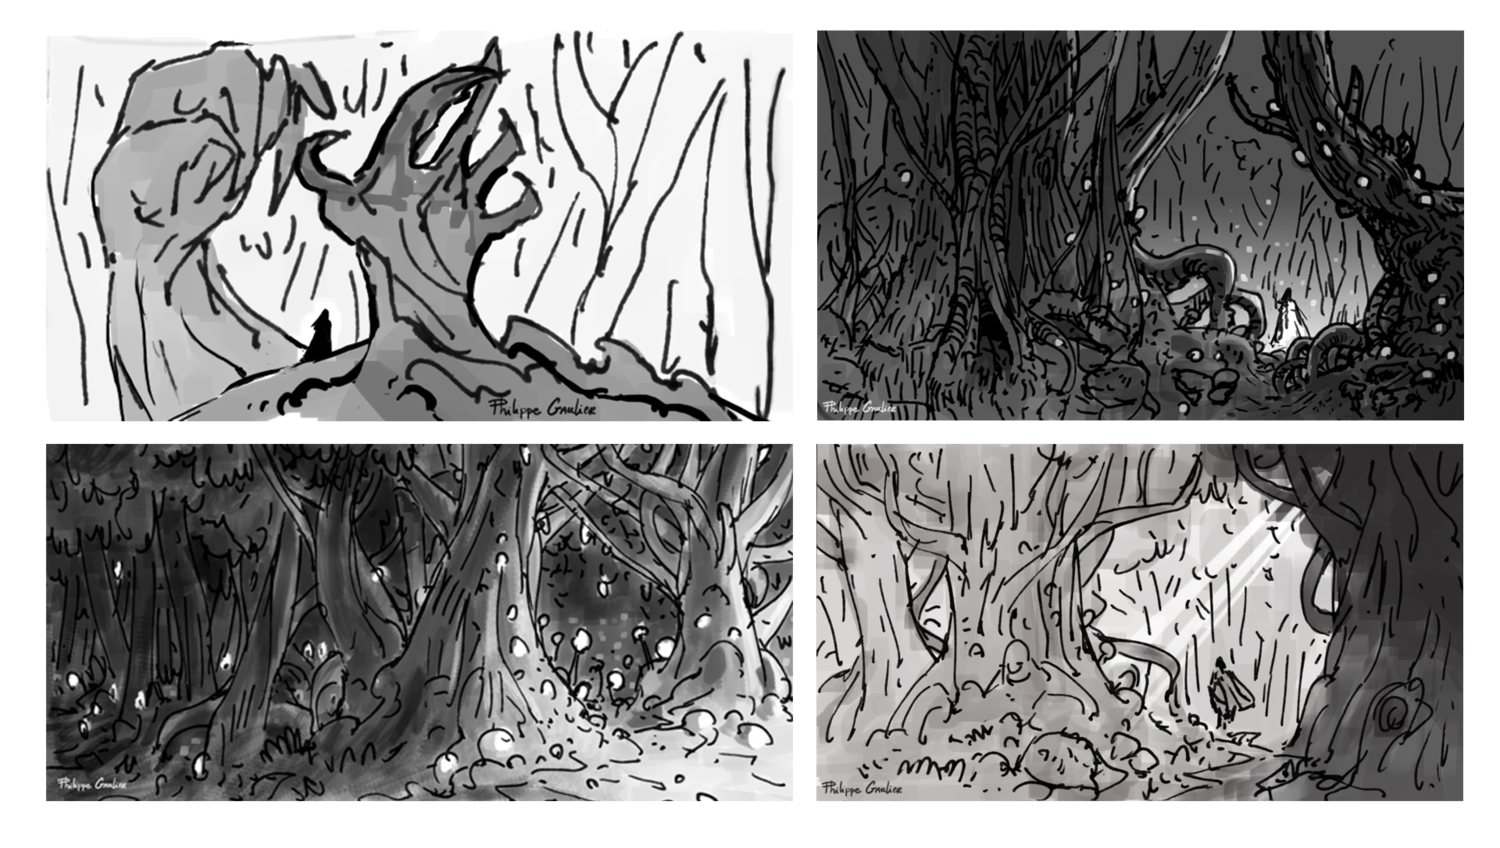 Forrest drawing perspective. Class concept artist philippe